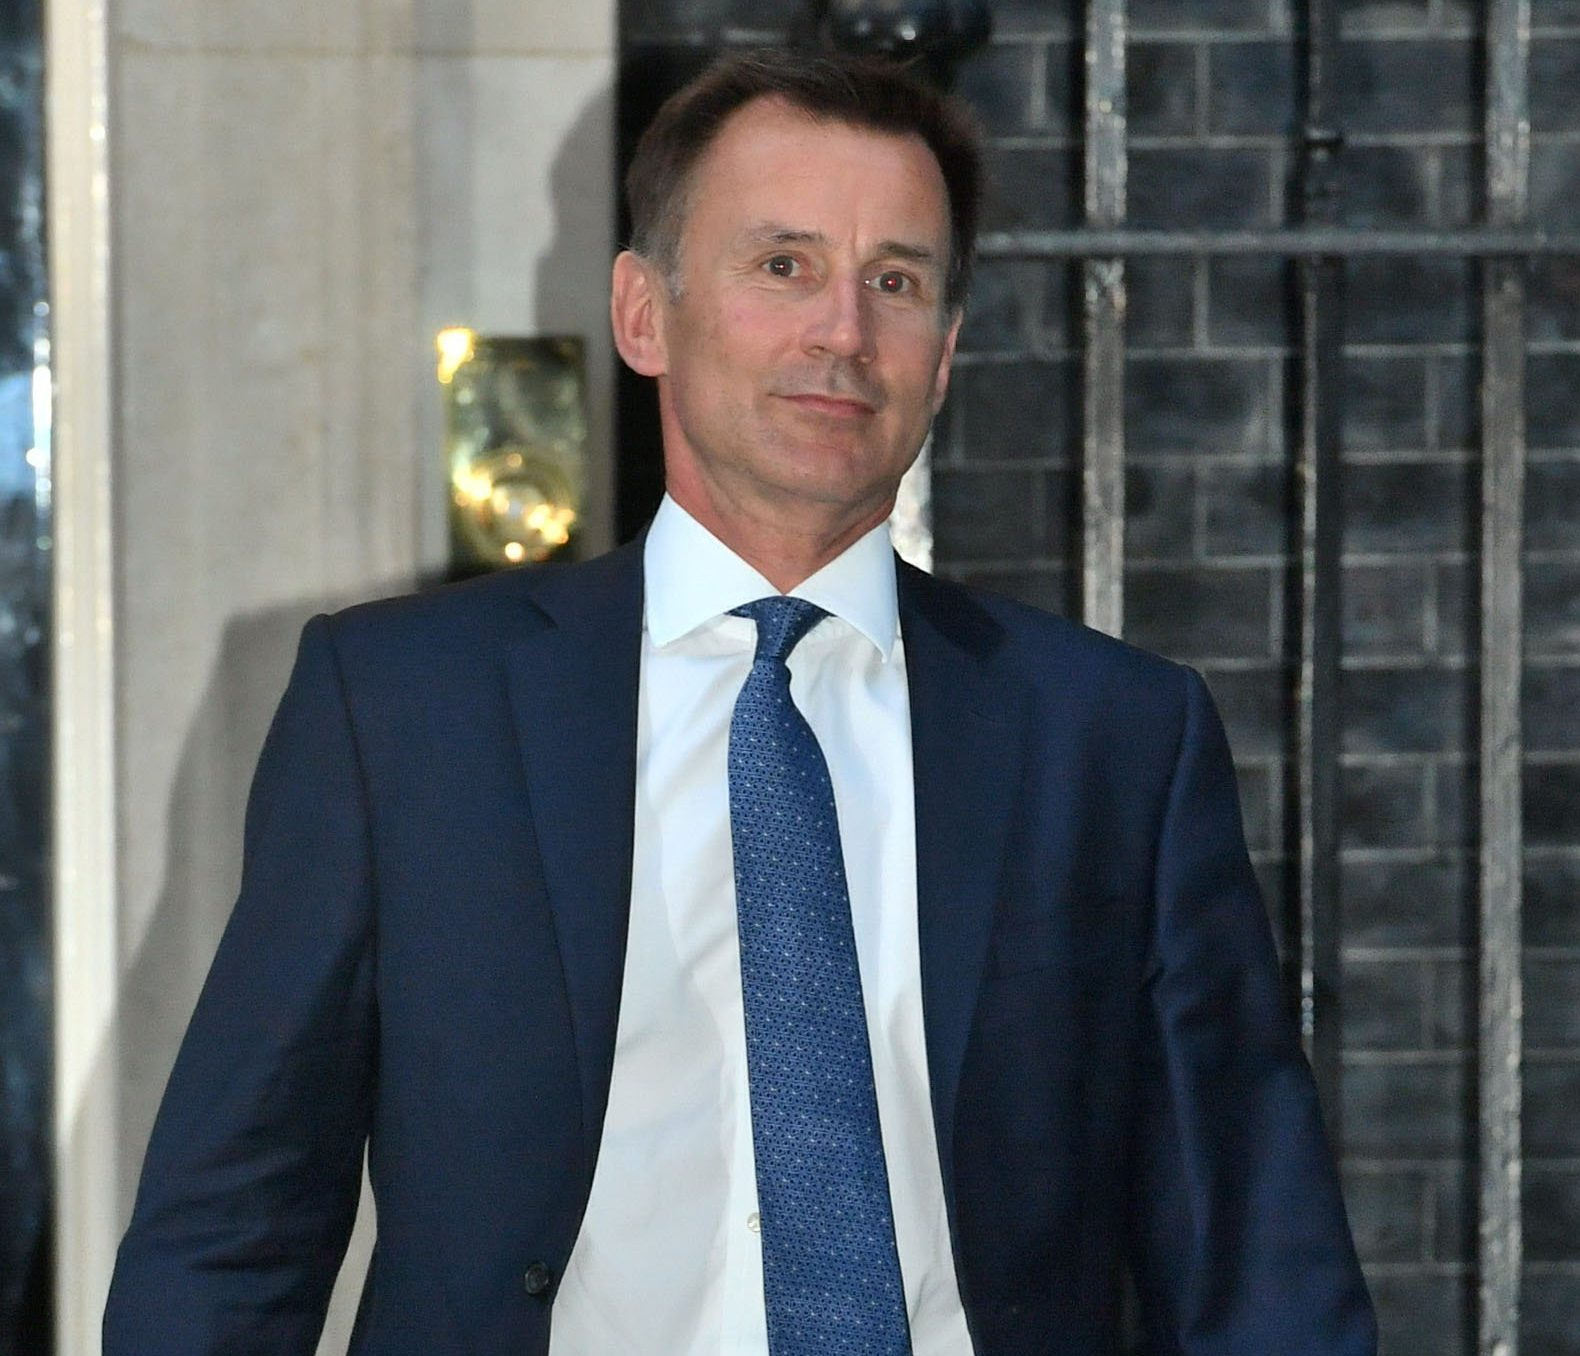 Jeremy Hunt leaves 10 Downing Street, London, where he was appointed as the new Foreign Secretary, following Boris Johnson's resignation. PRESS ASSOCIATION Photo. Picture date: Monday July 9, 2018. See PA story POLITICS Brexit. Photo credit should read: John Stillwell/PA Wire